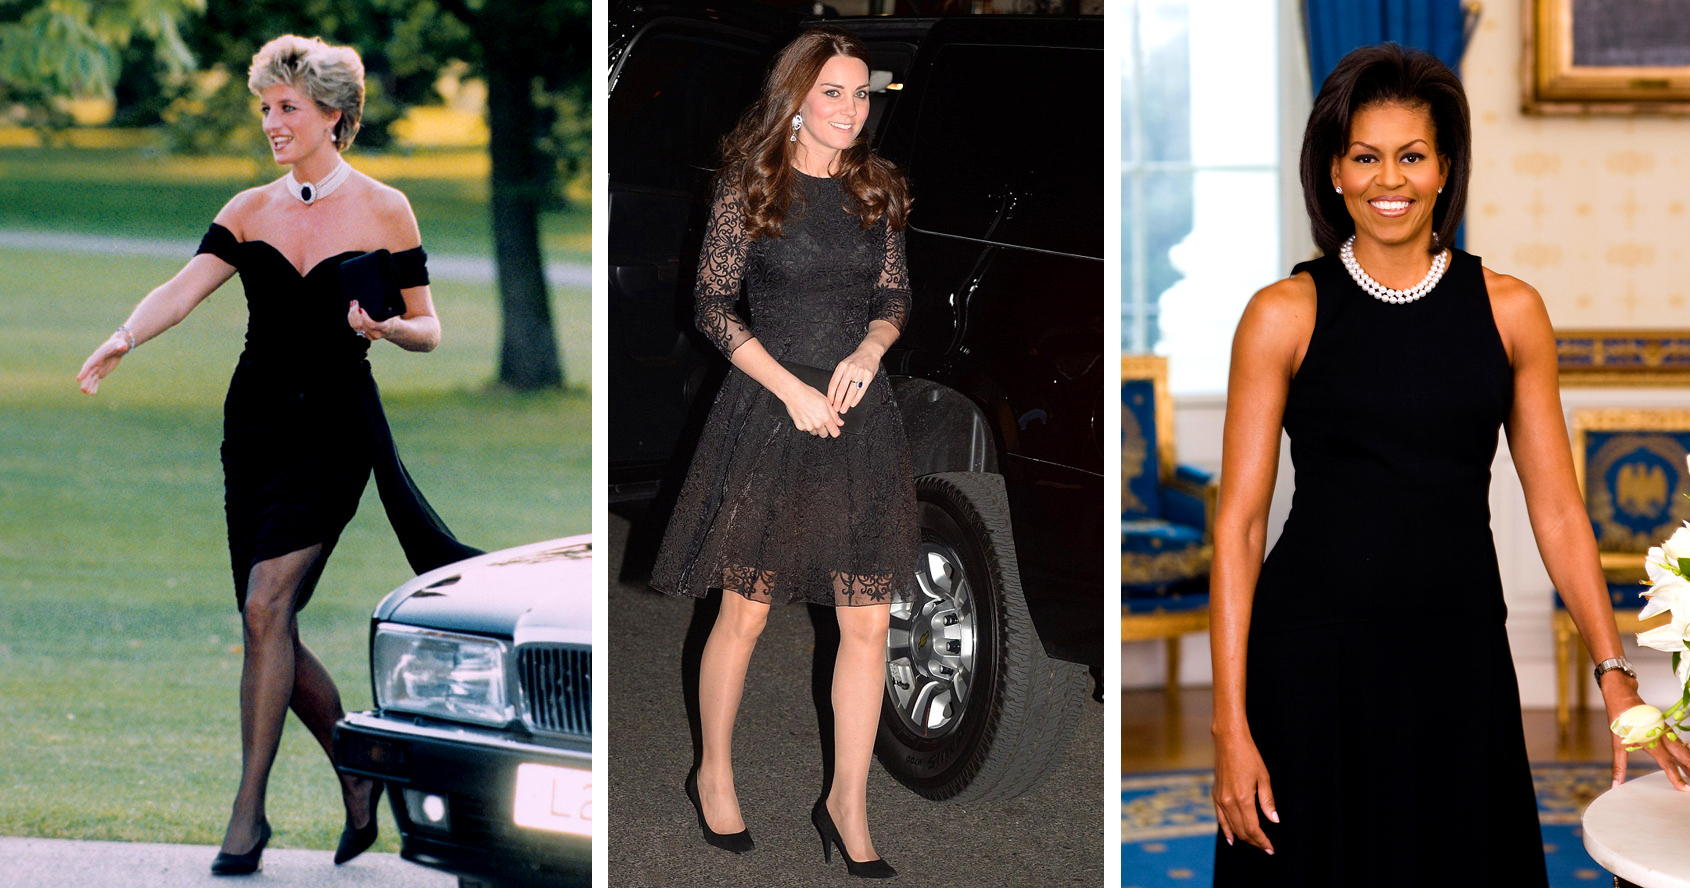 lbd-diana-kate-michelle